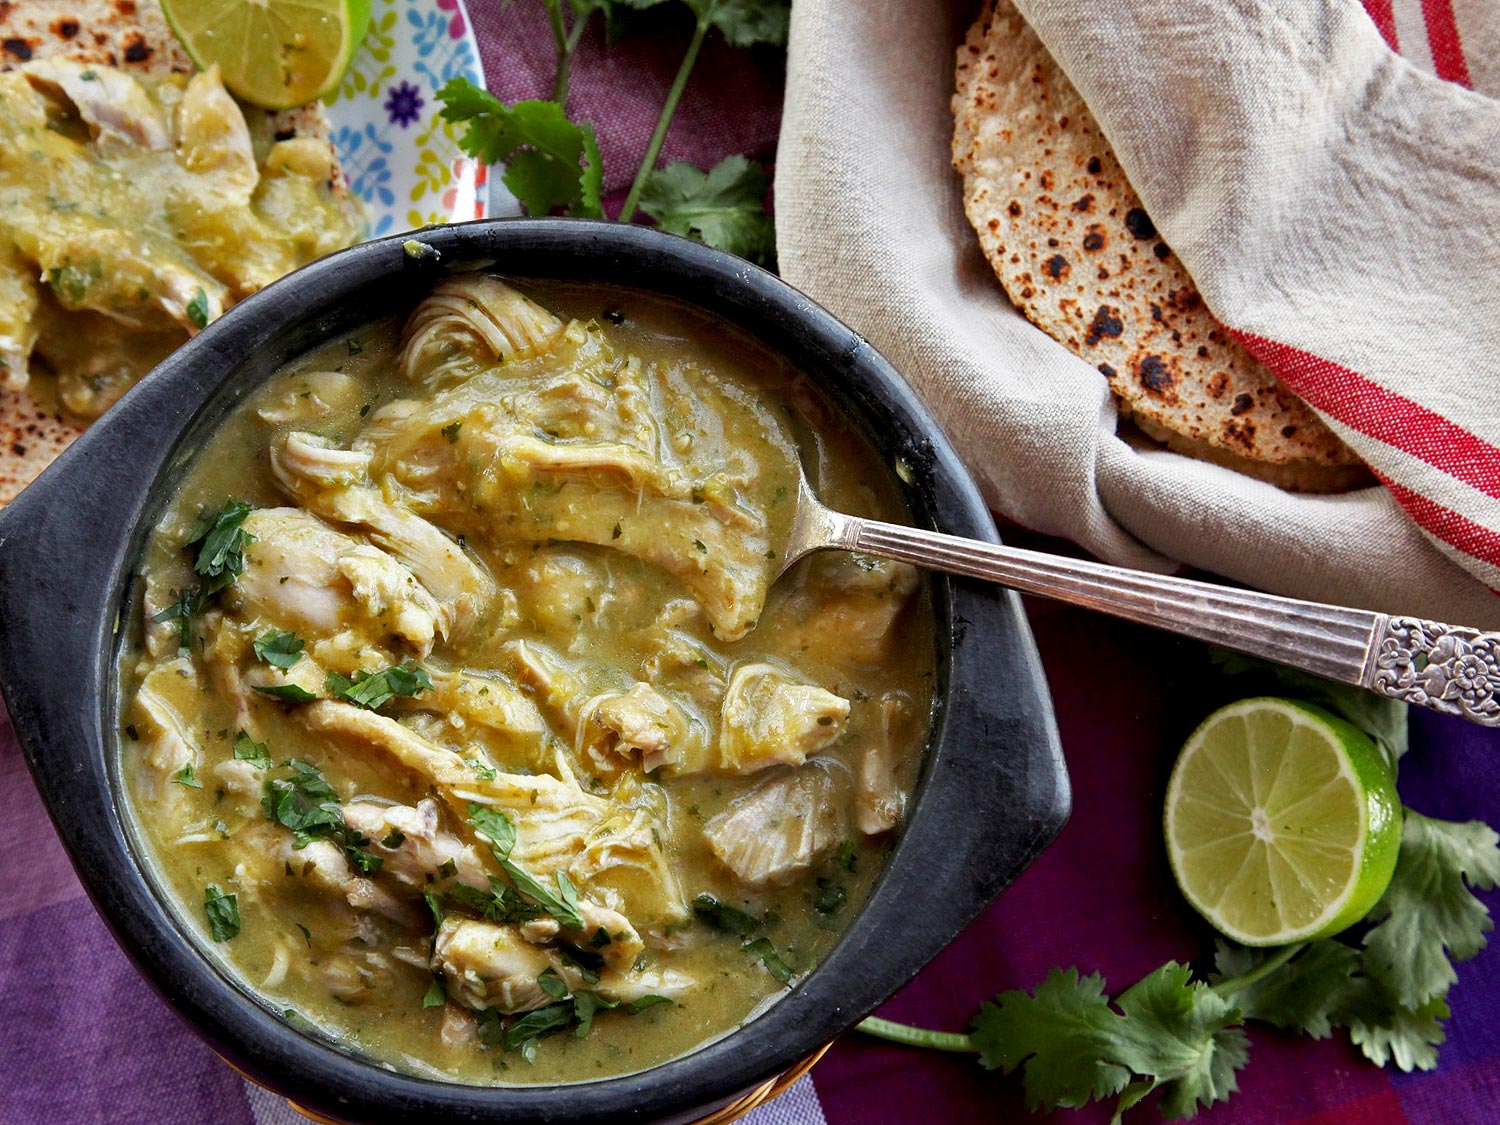 Green chile with chicken